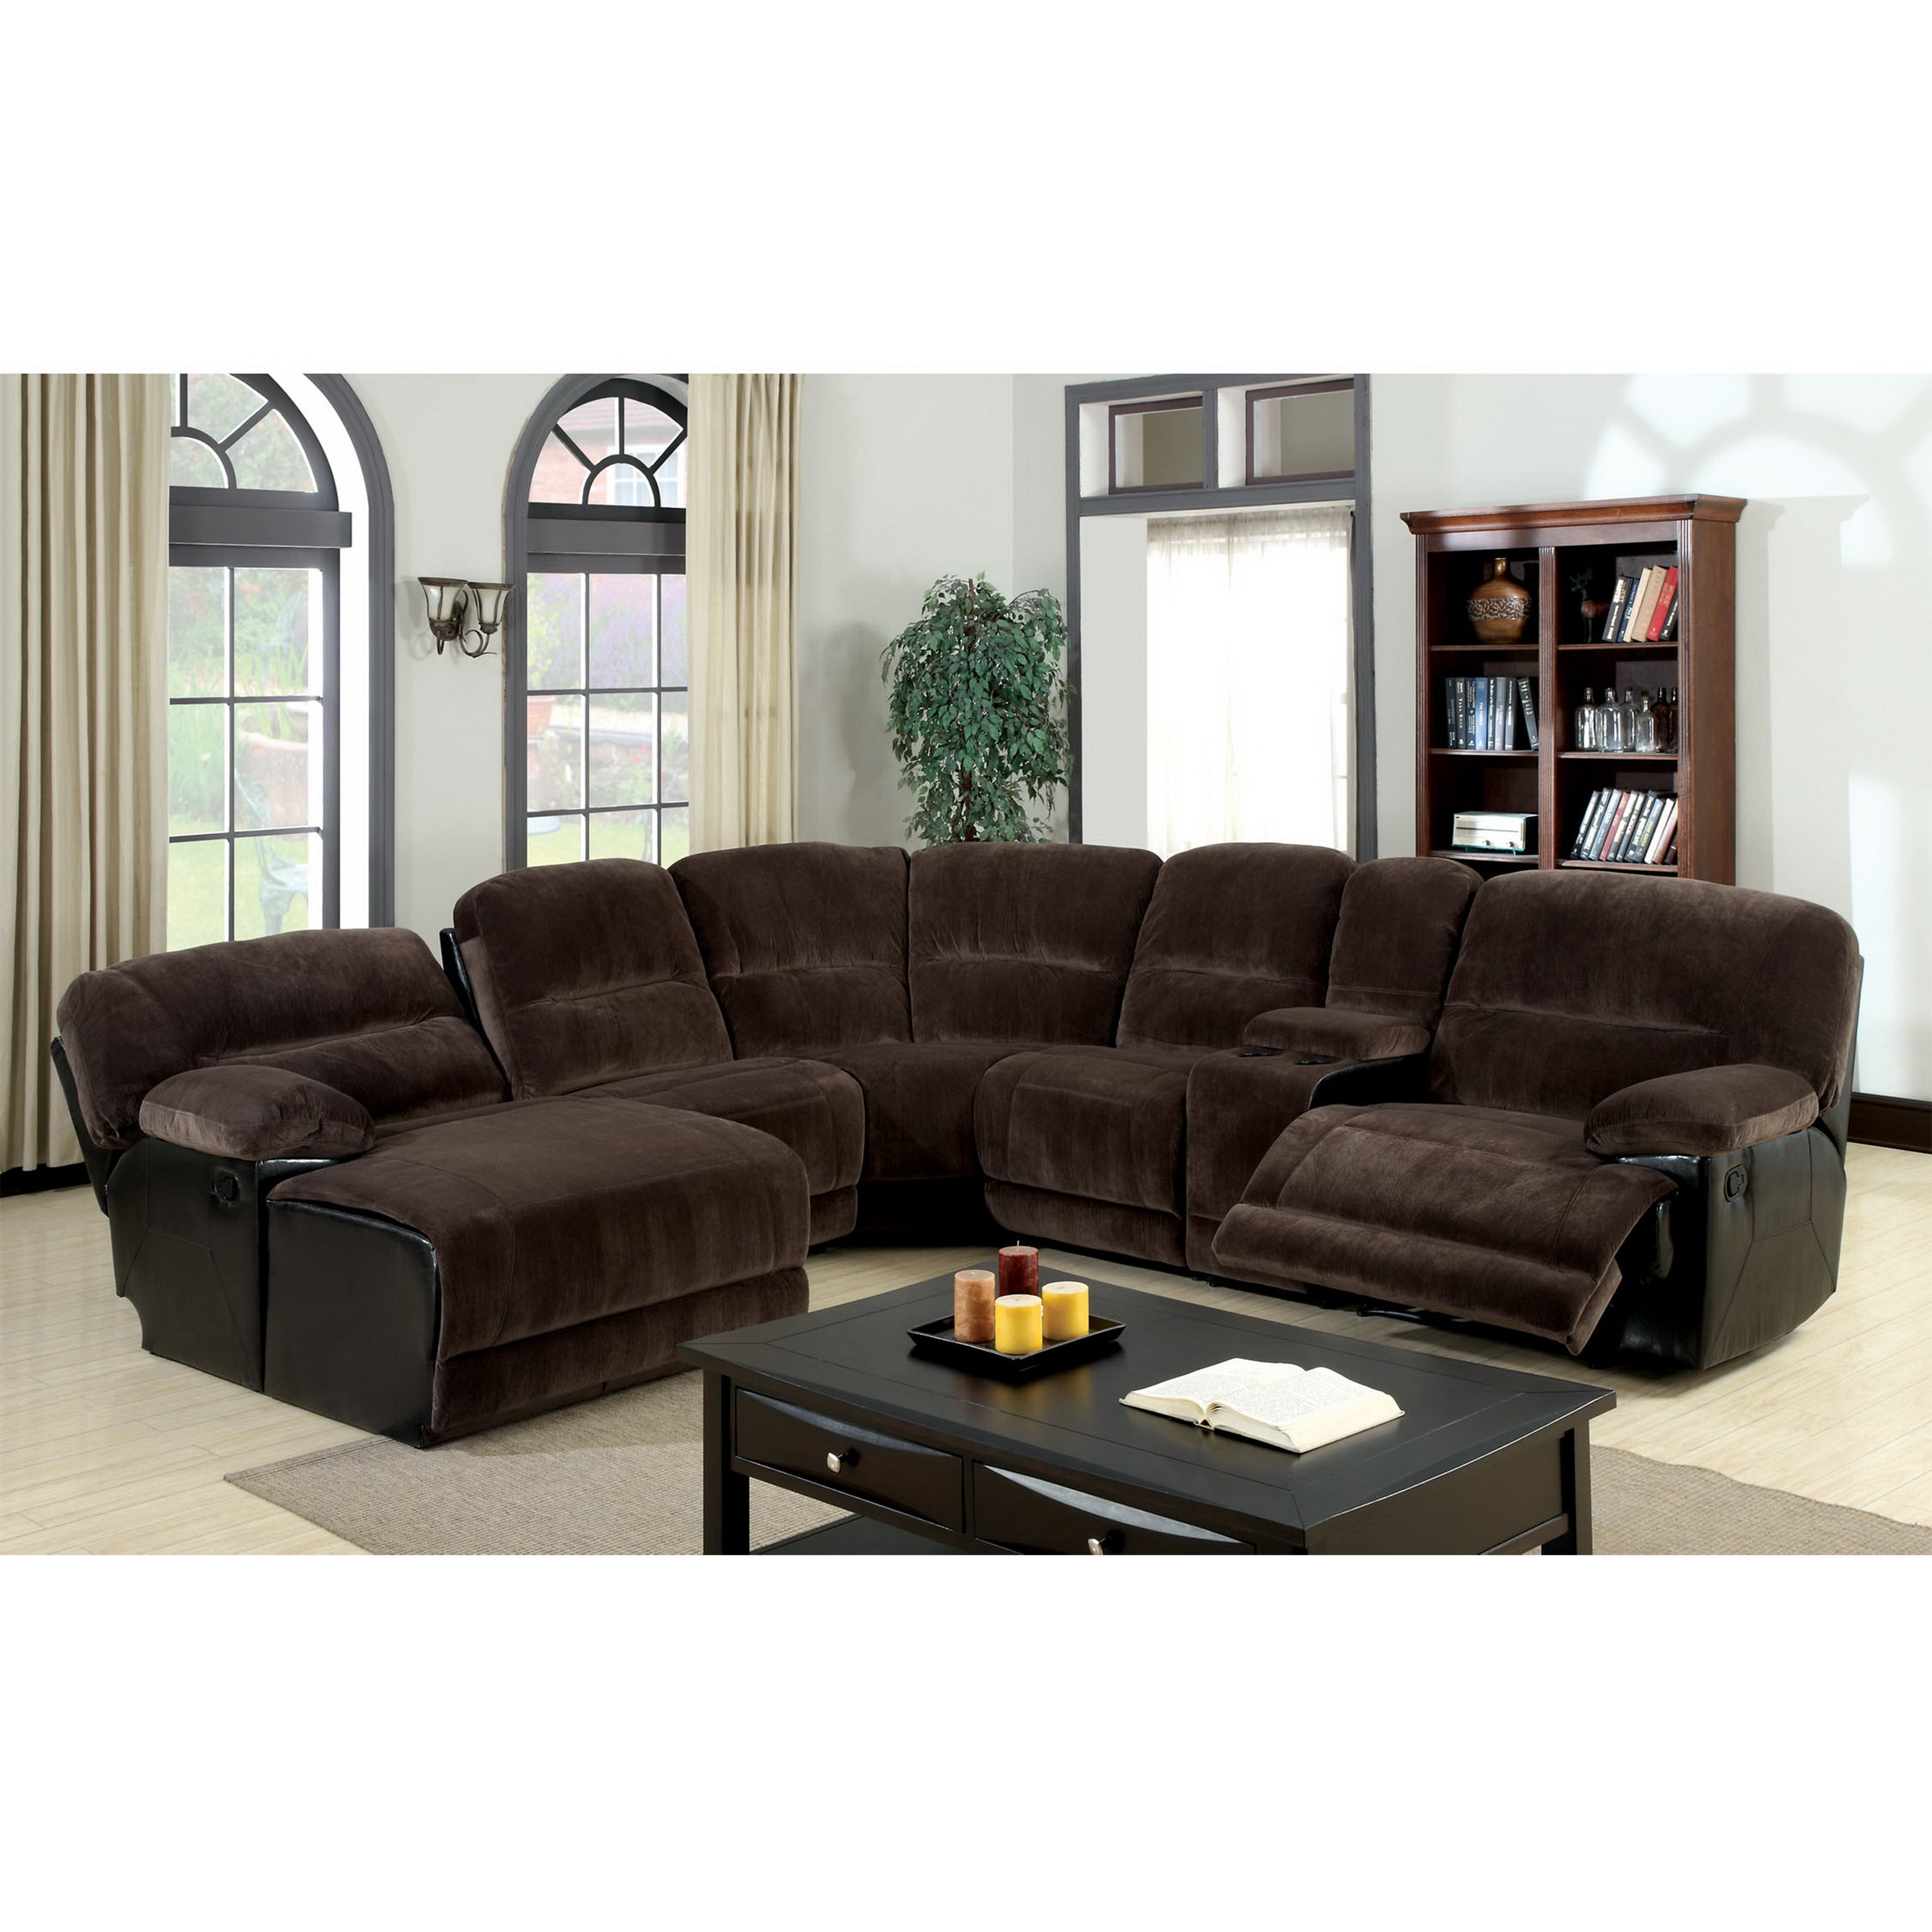 club furniture reclining awesome modern lounge of size ultra chair living fresh room chaise chairs outdoor cheap recliner sofa ashley accent swivel bed ikea full twin